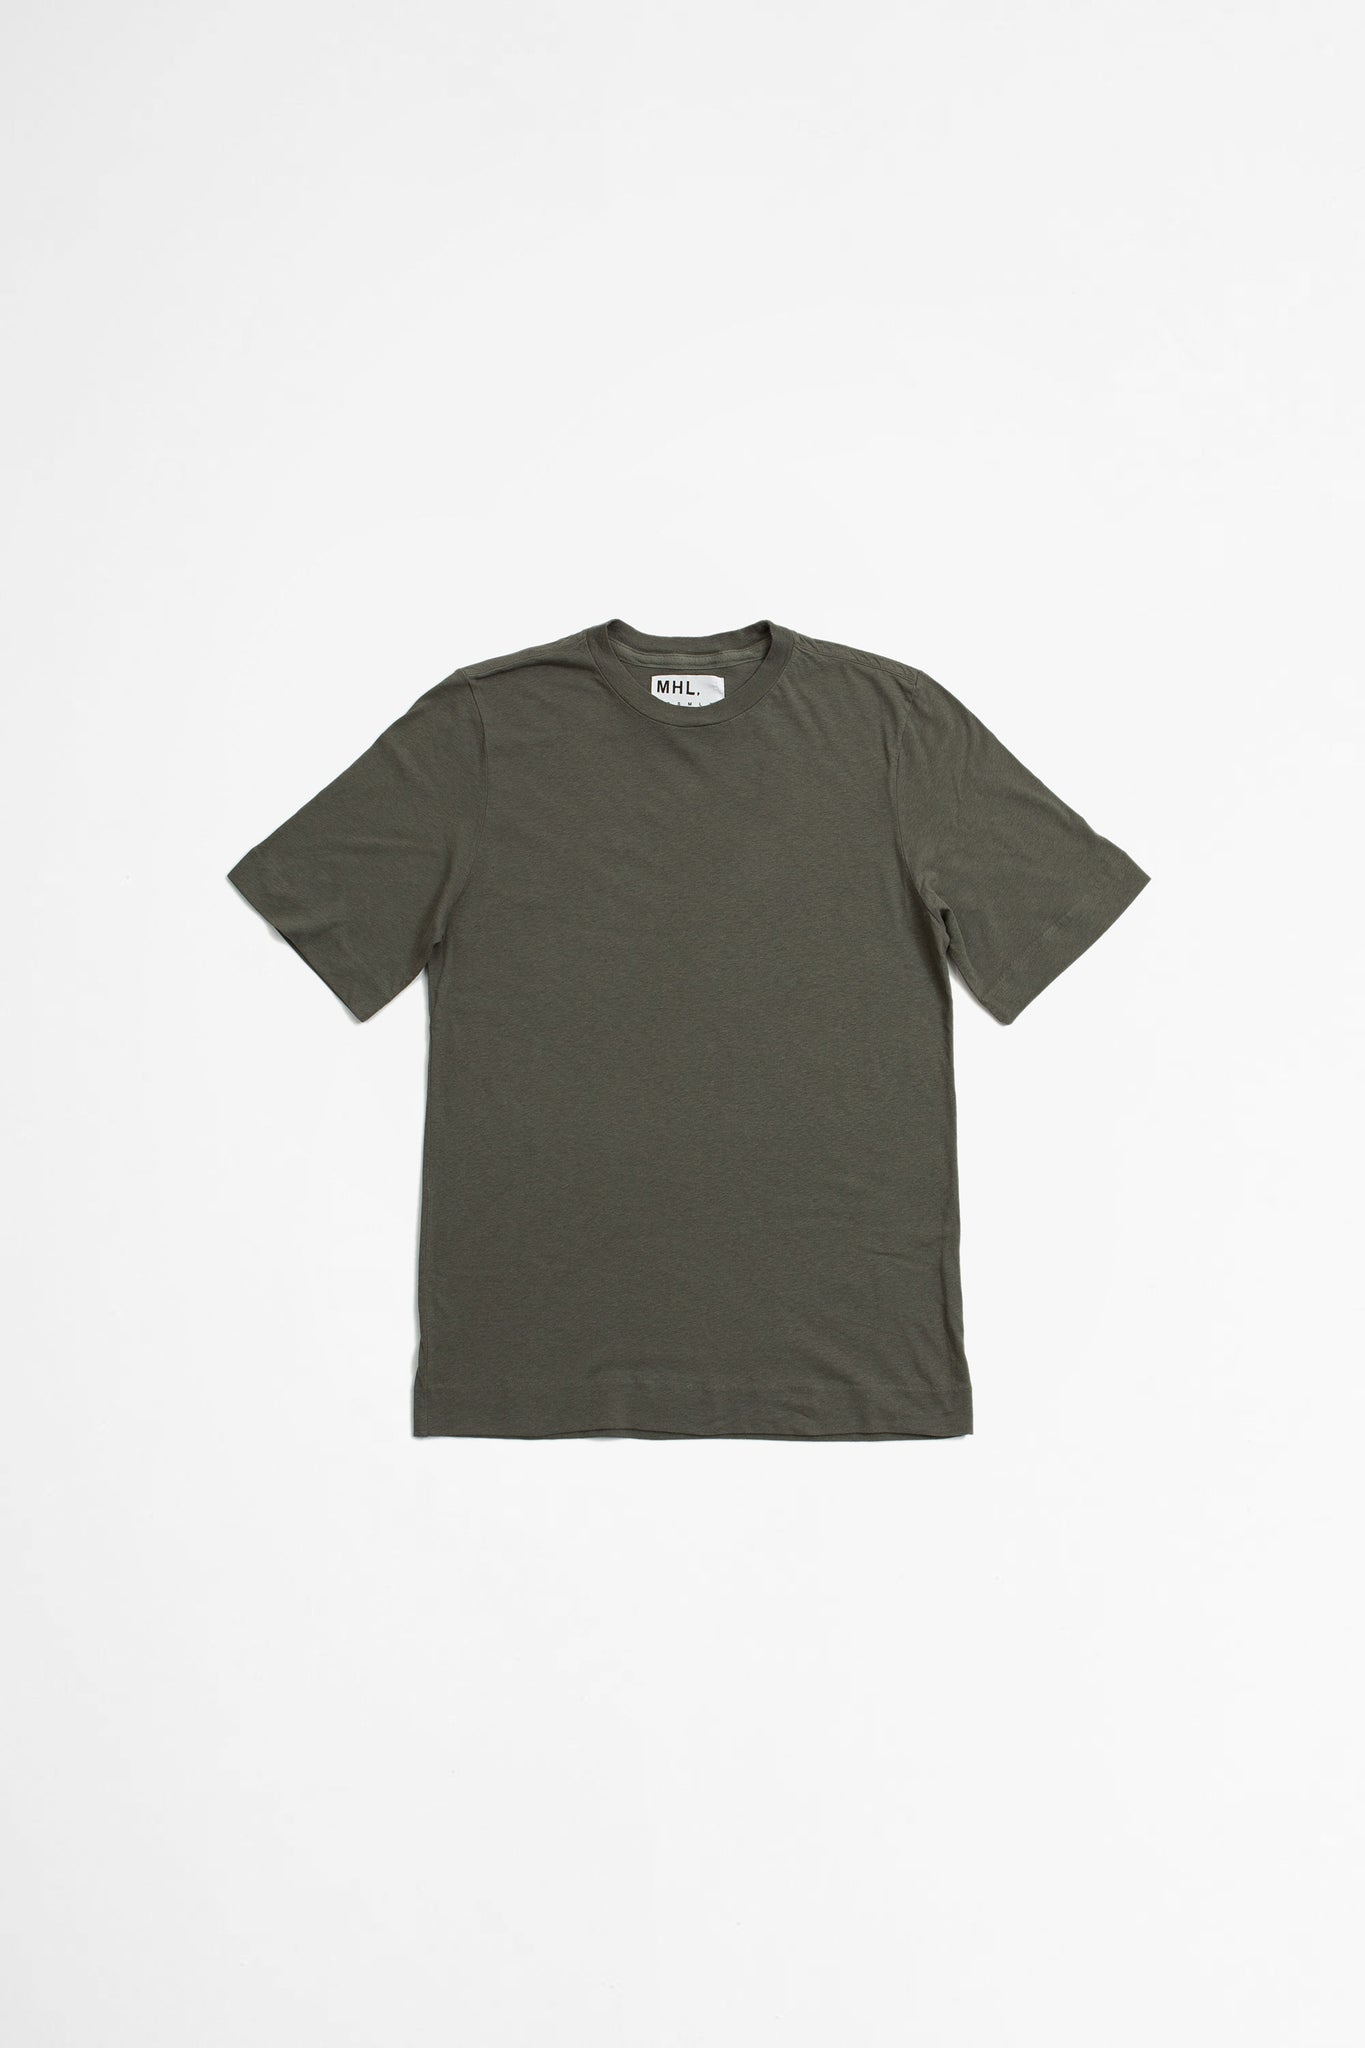 Basic t-shirt cotton linen jersey sage